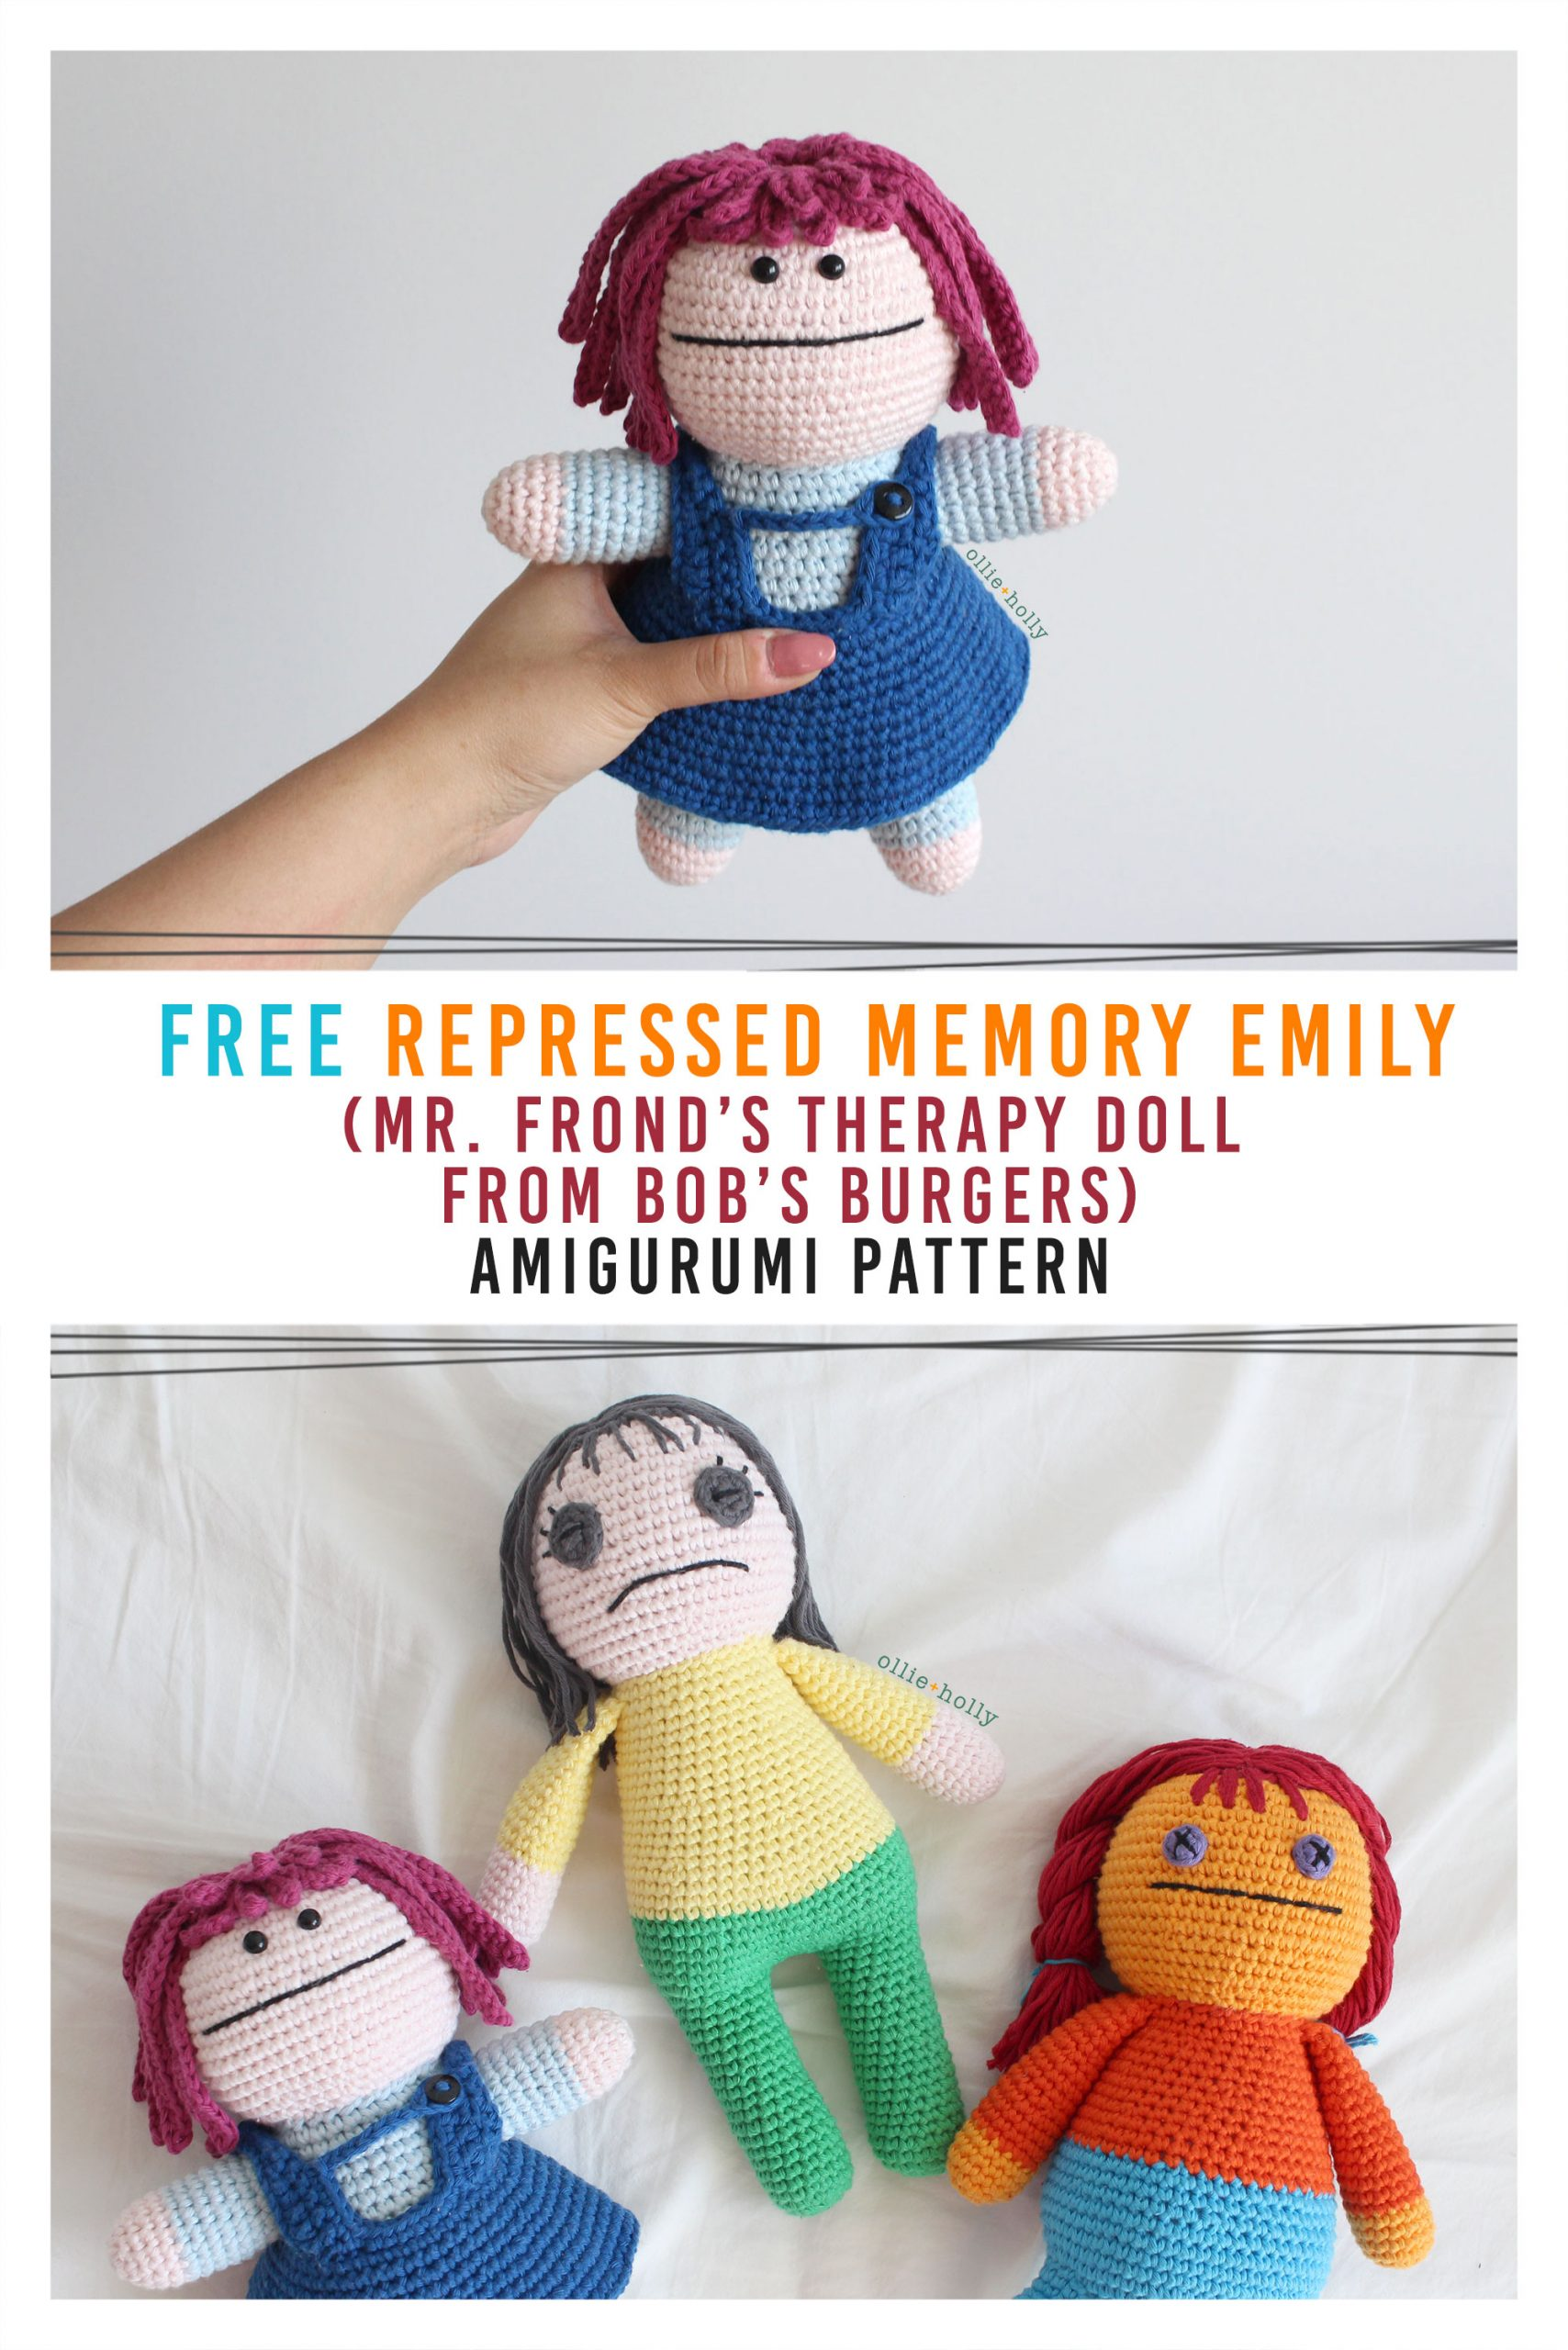 Free Repressed Memory Emily (Mr. Frond's Therapy Dolls from Bob's Burgers) Amigurumi Crochet Pattern Collection